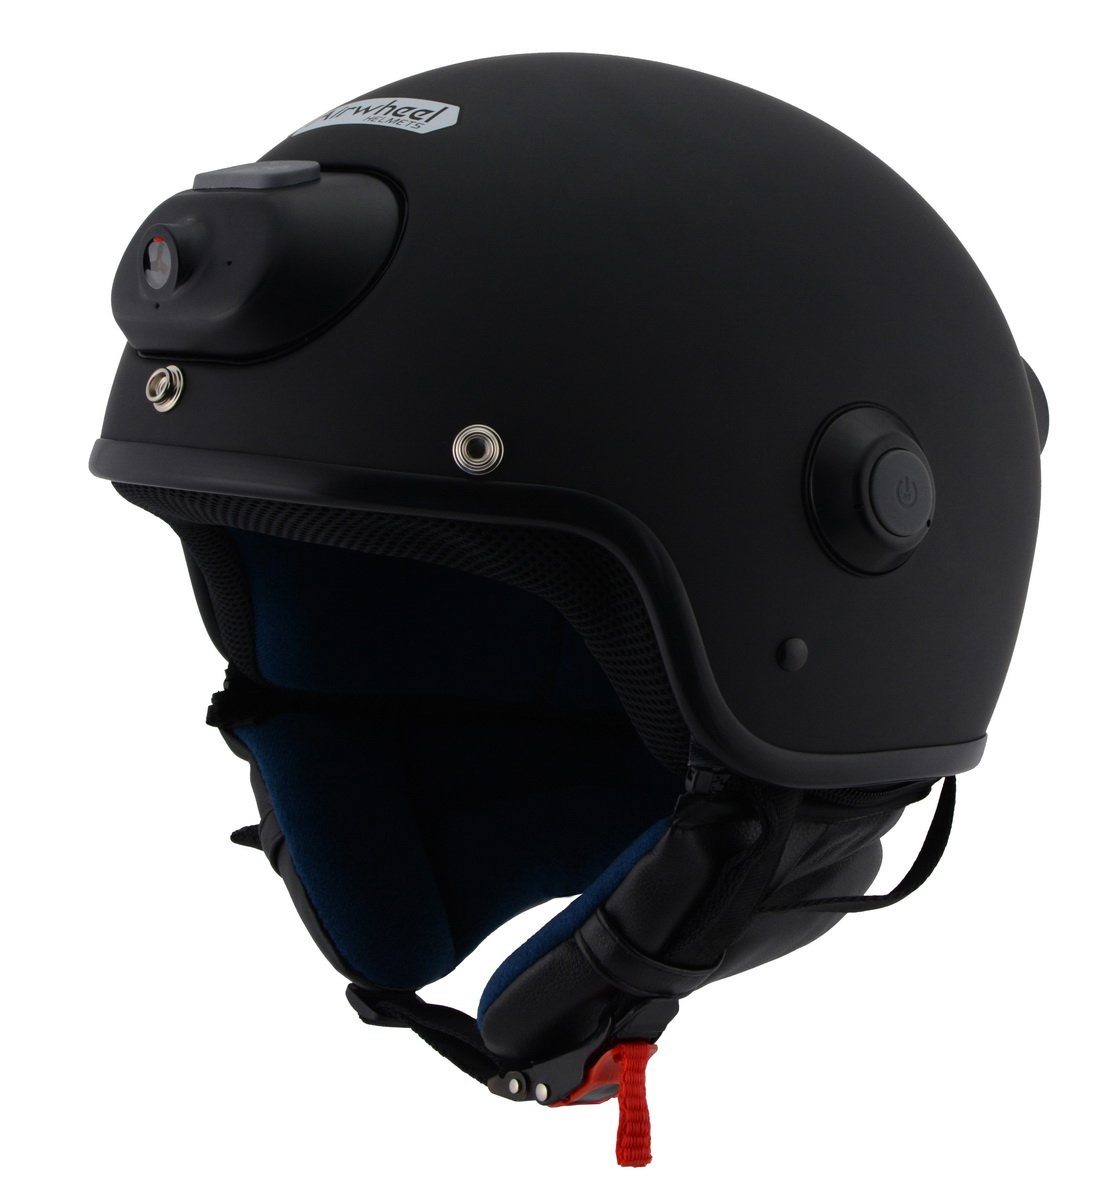 Milwaukee Performance Helmet MPH9802DOT 'Vision' Open Face Matte Black Helmet with Video Camera